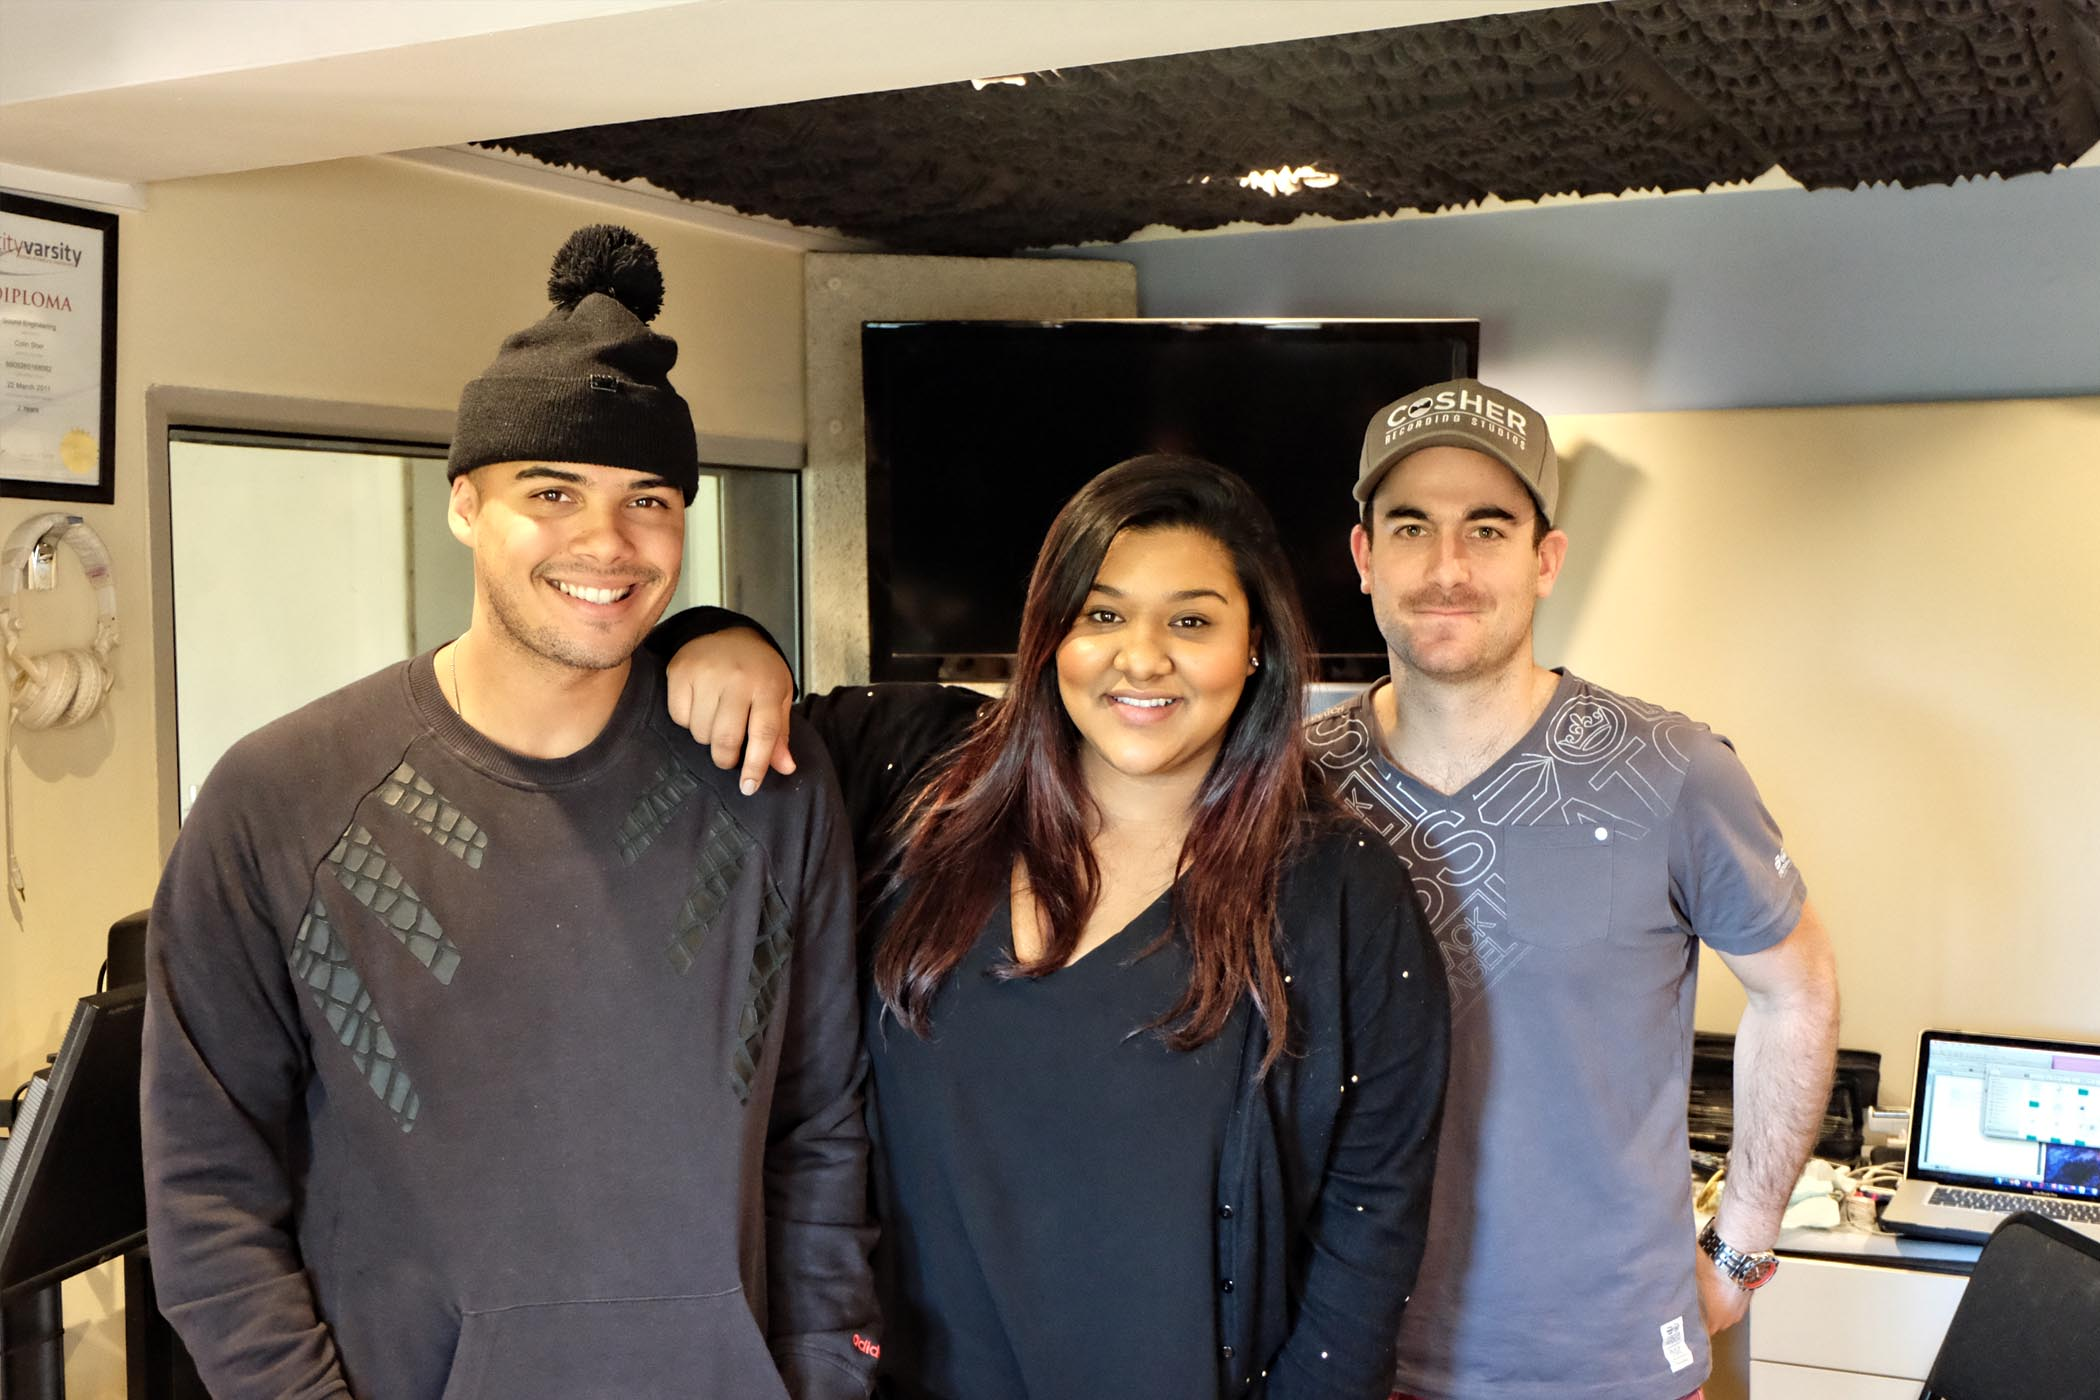 Jimmy Nevis at Cosher Recording Studios